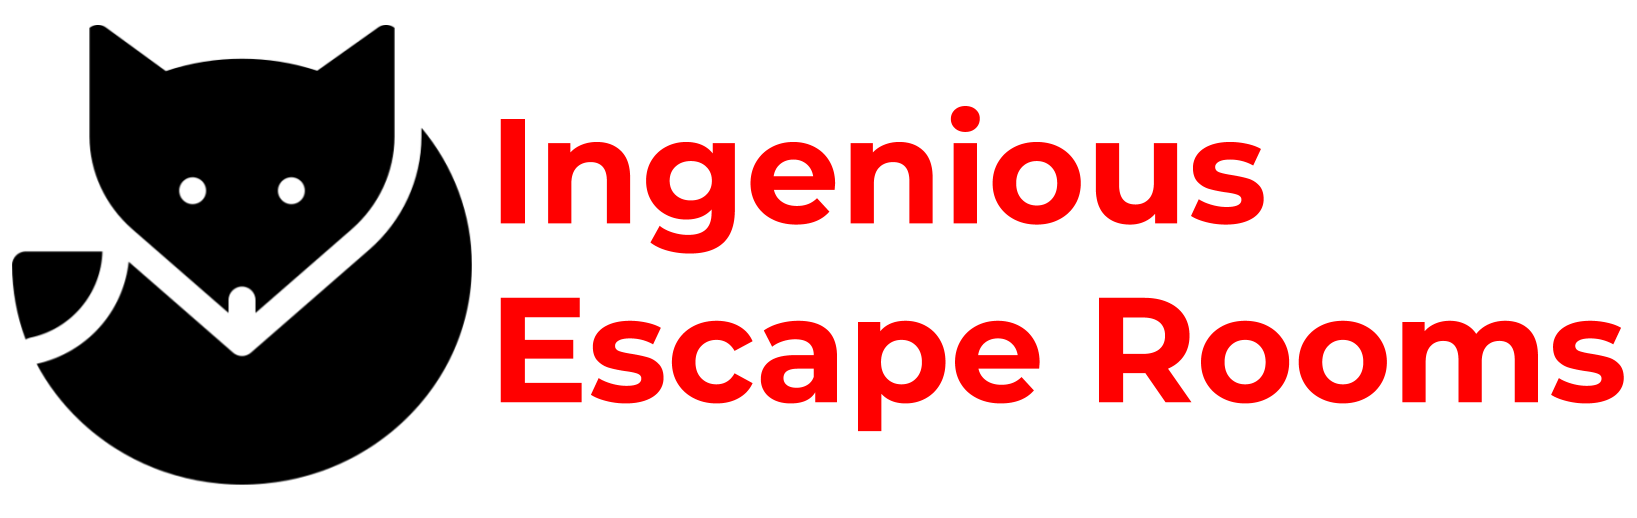 Ingenious Escape Rooms |   Contact